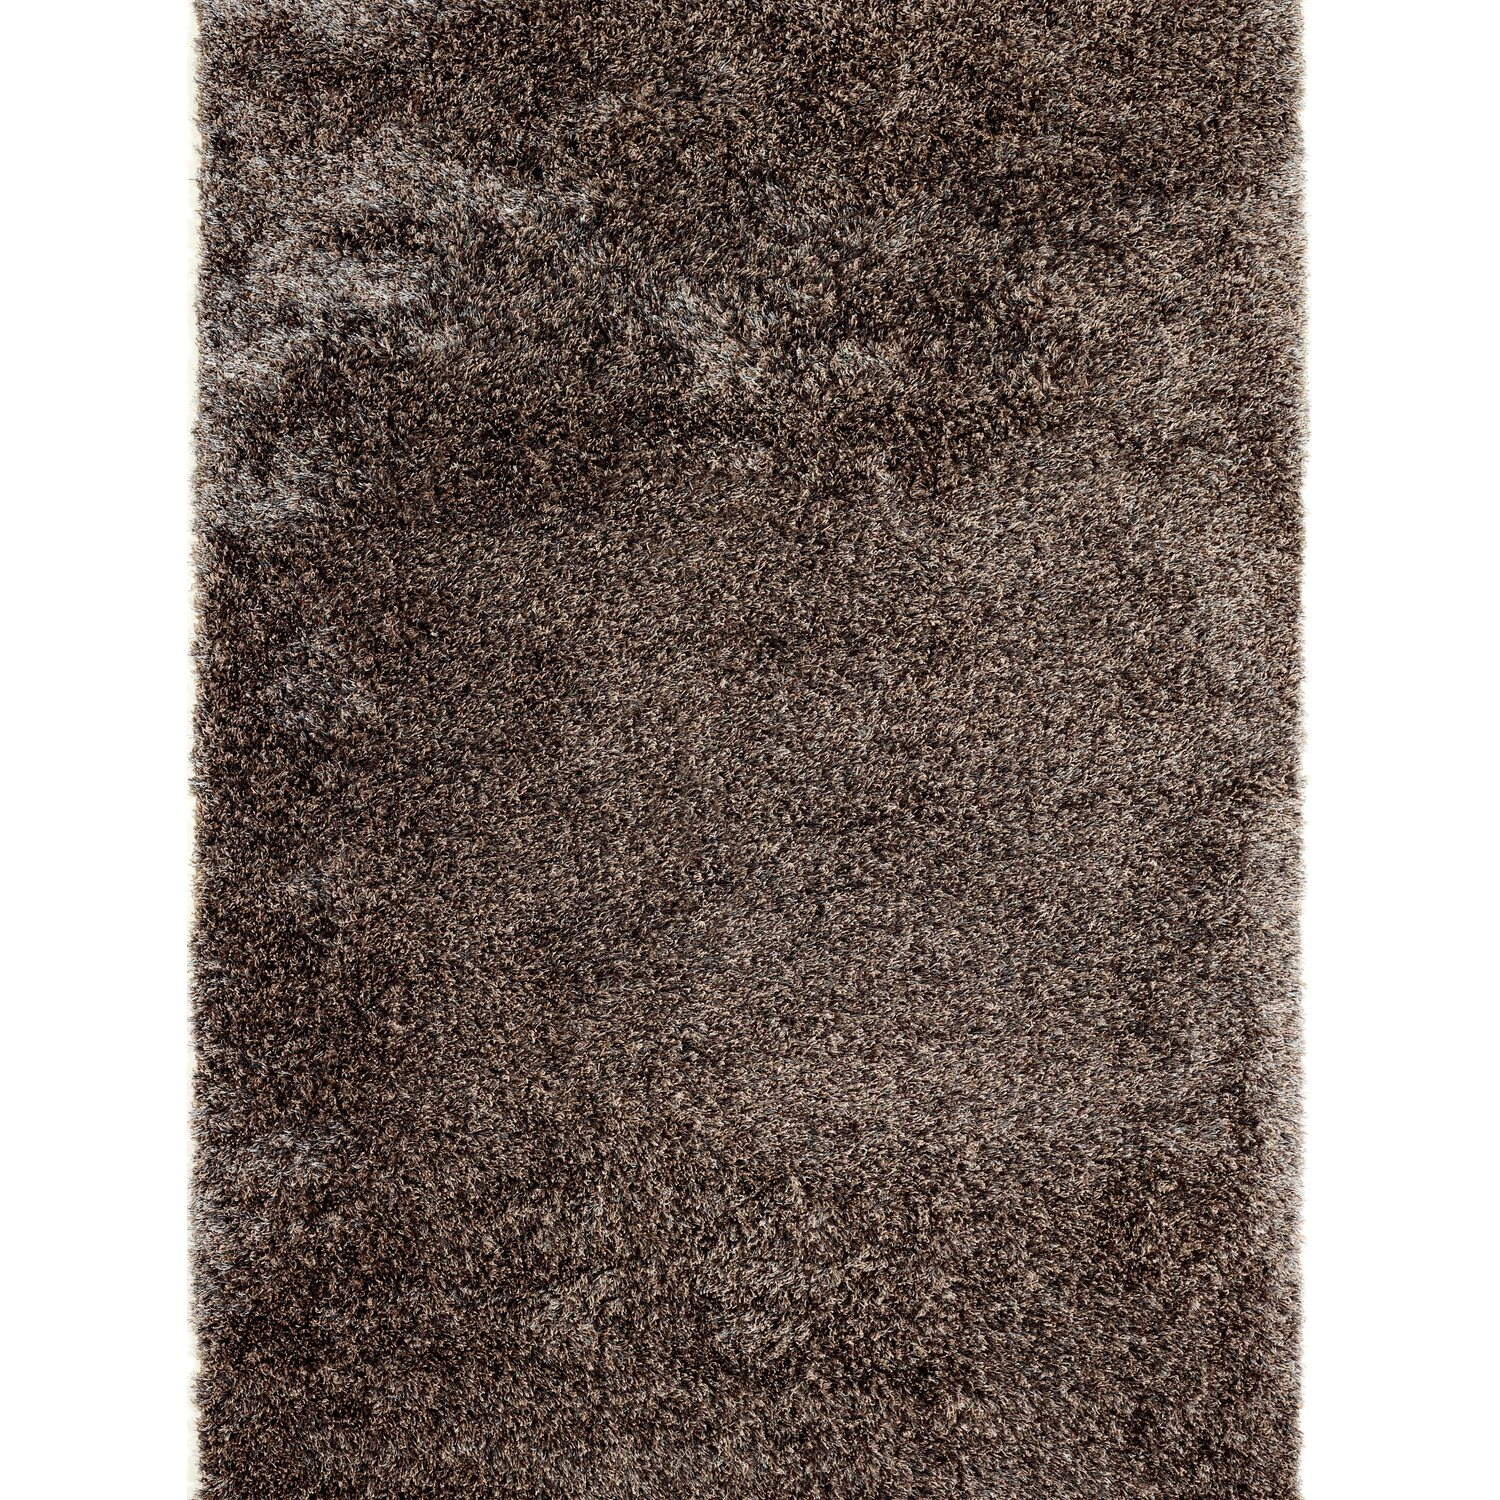 bb home passion Barbara Becker Teppich Emotion 70 cm x 140 cm Taupe